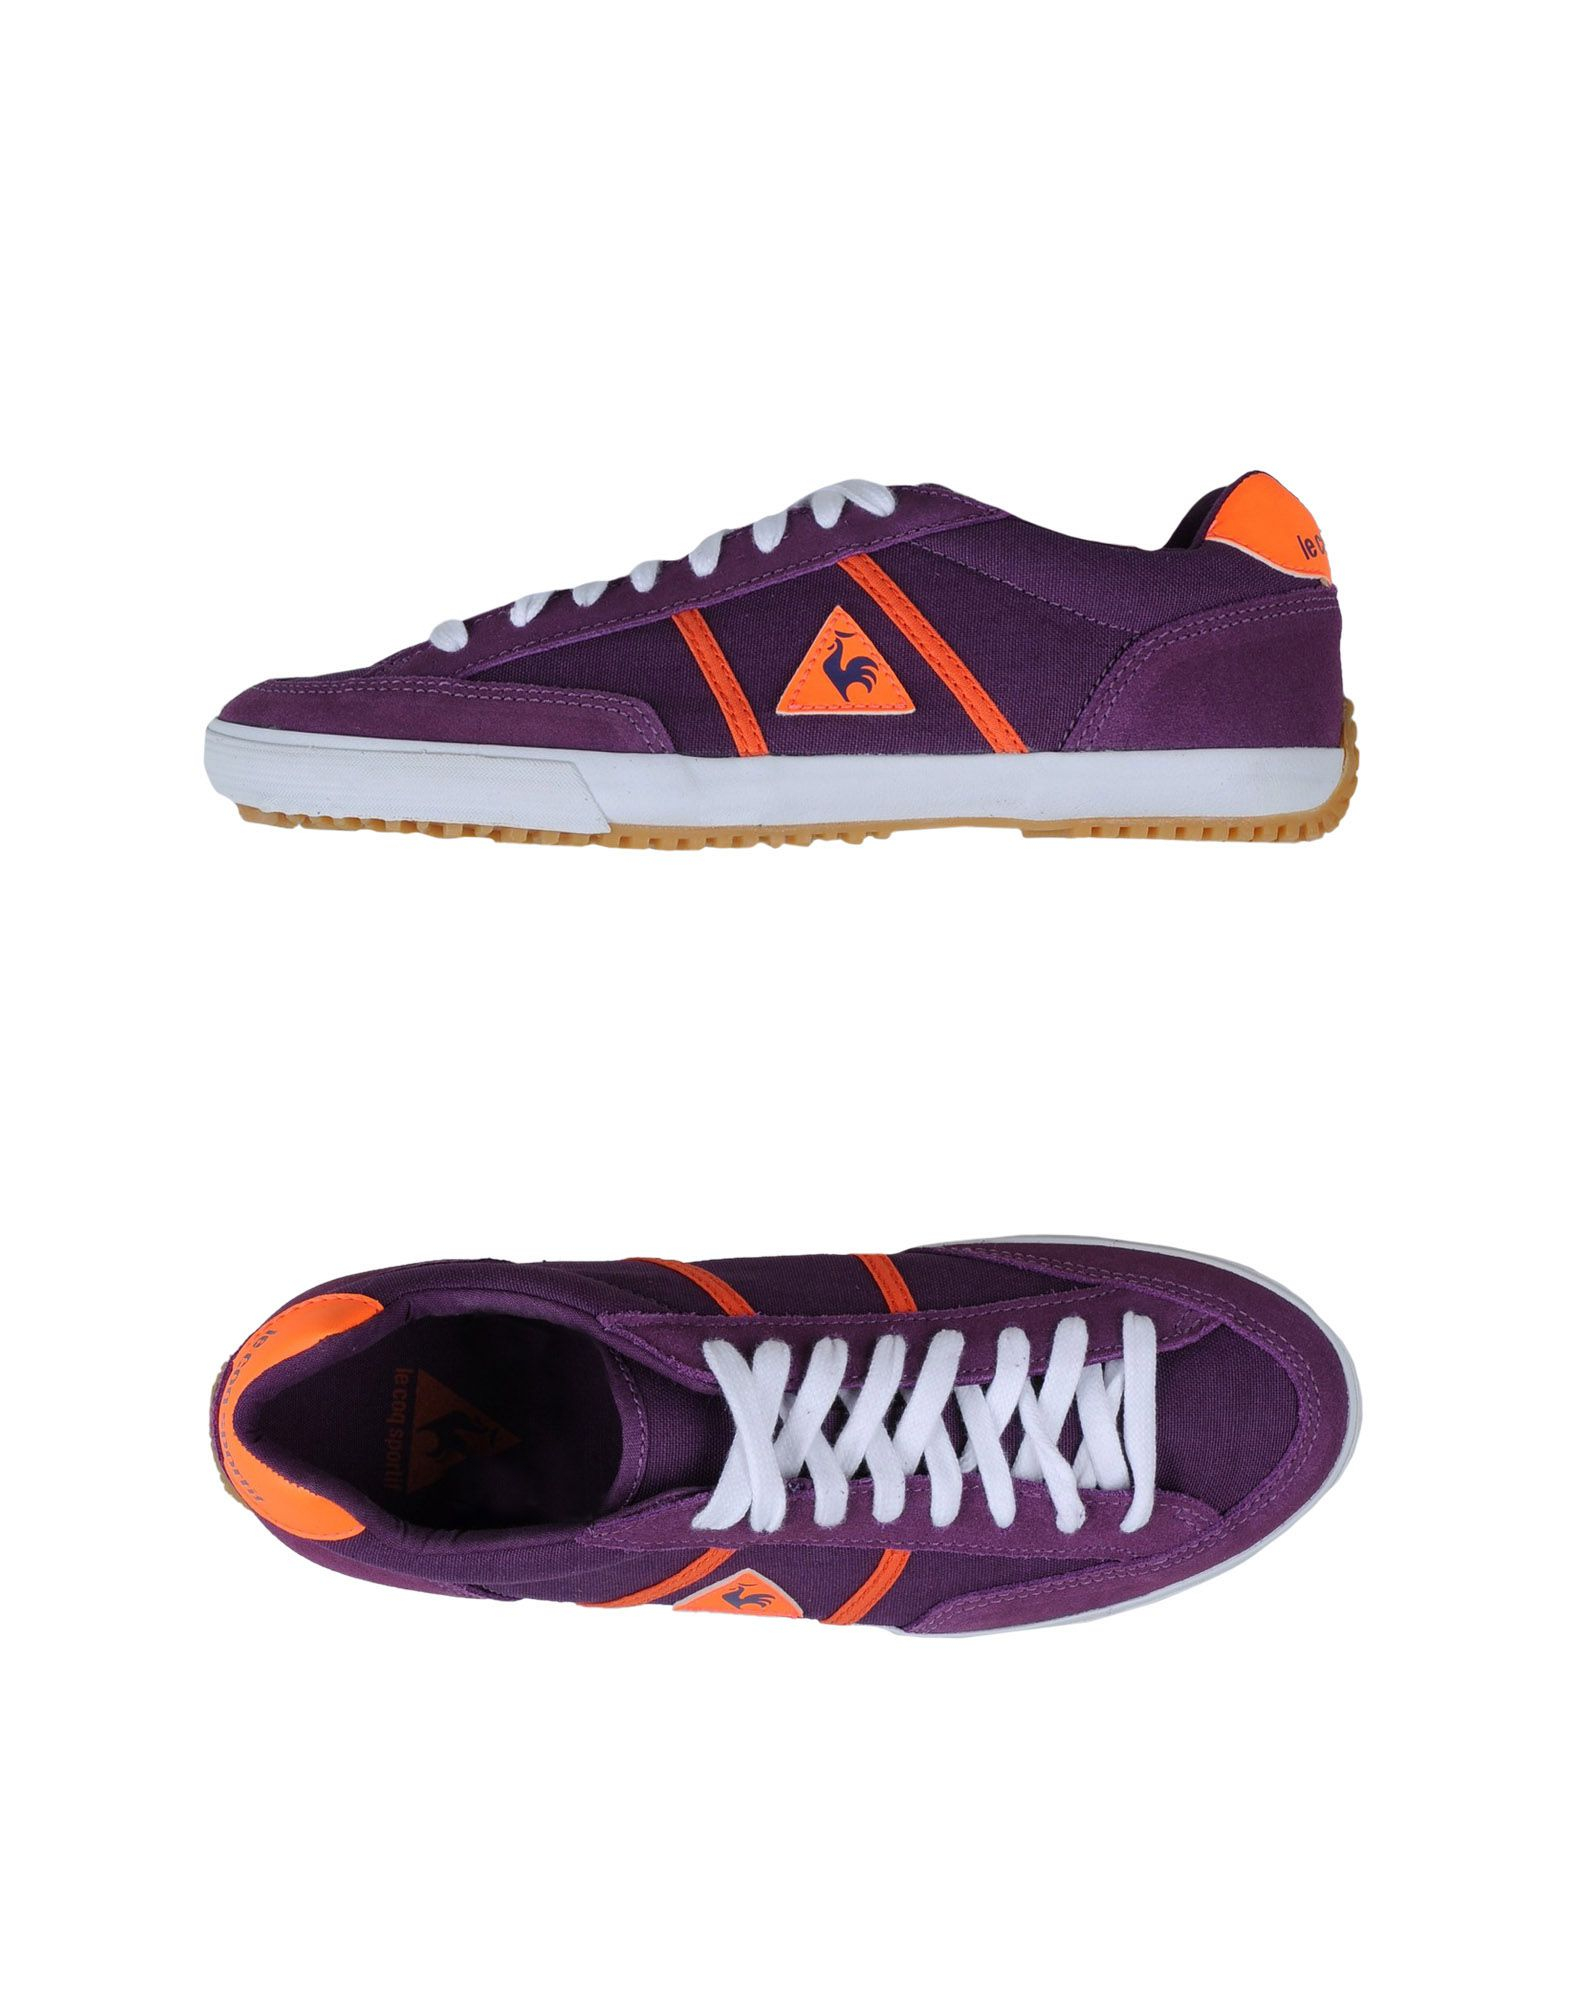 new styles 7dcaf 99685 Le Coq Sportif Trainers in Purple - Lyst